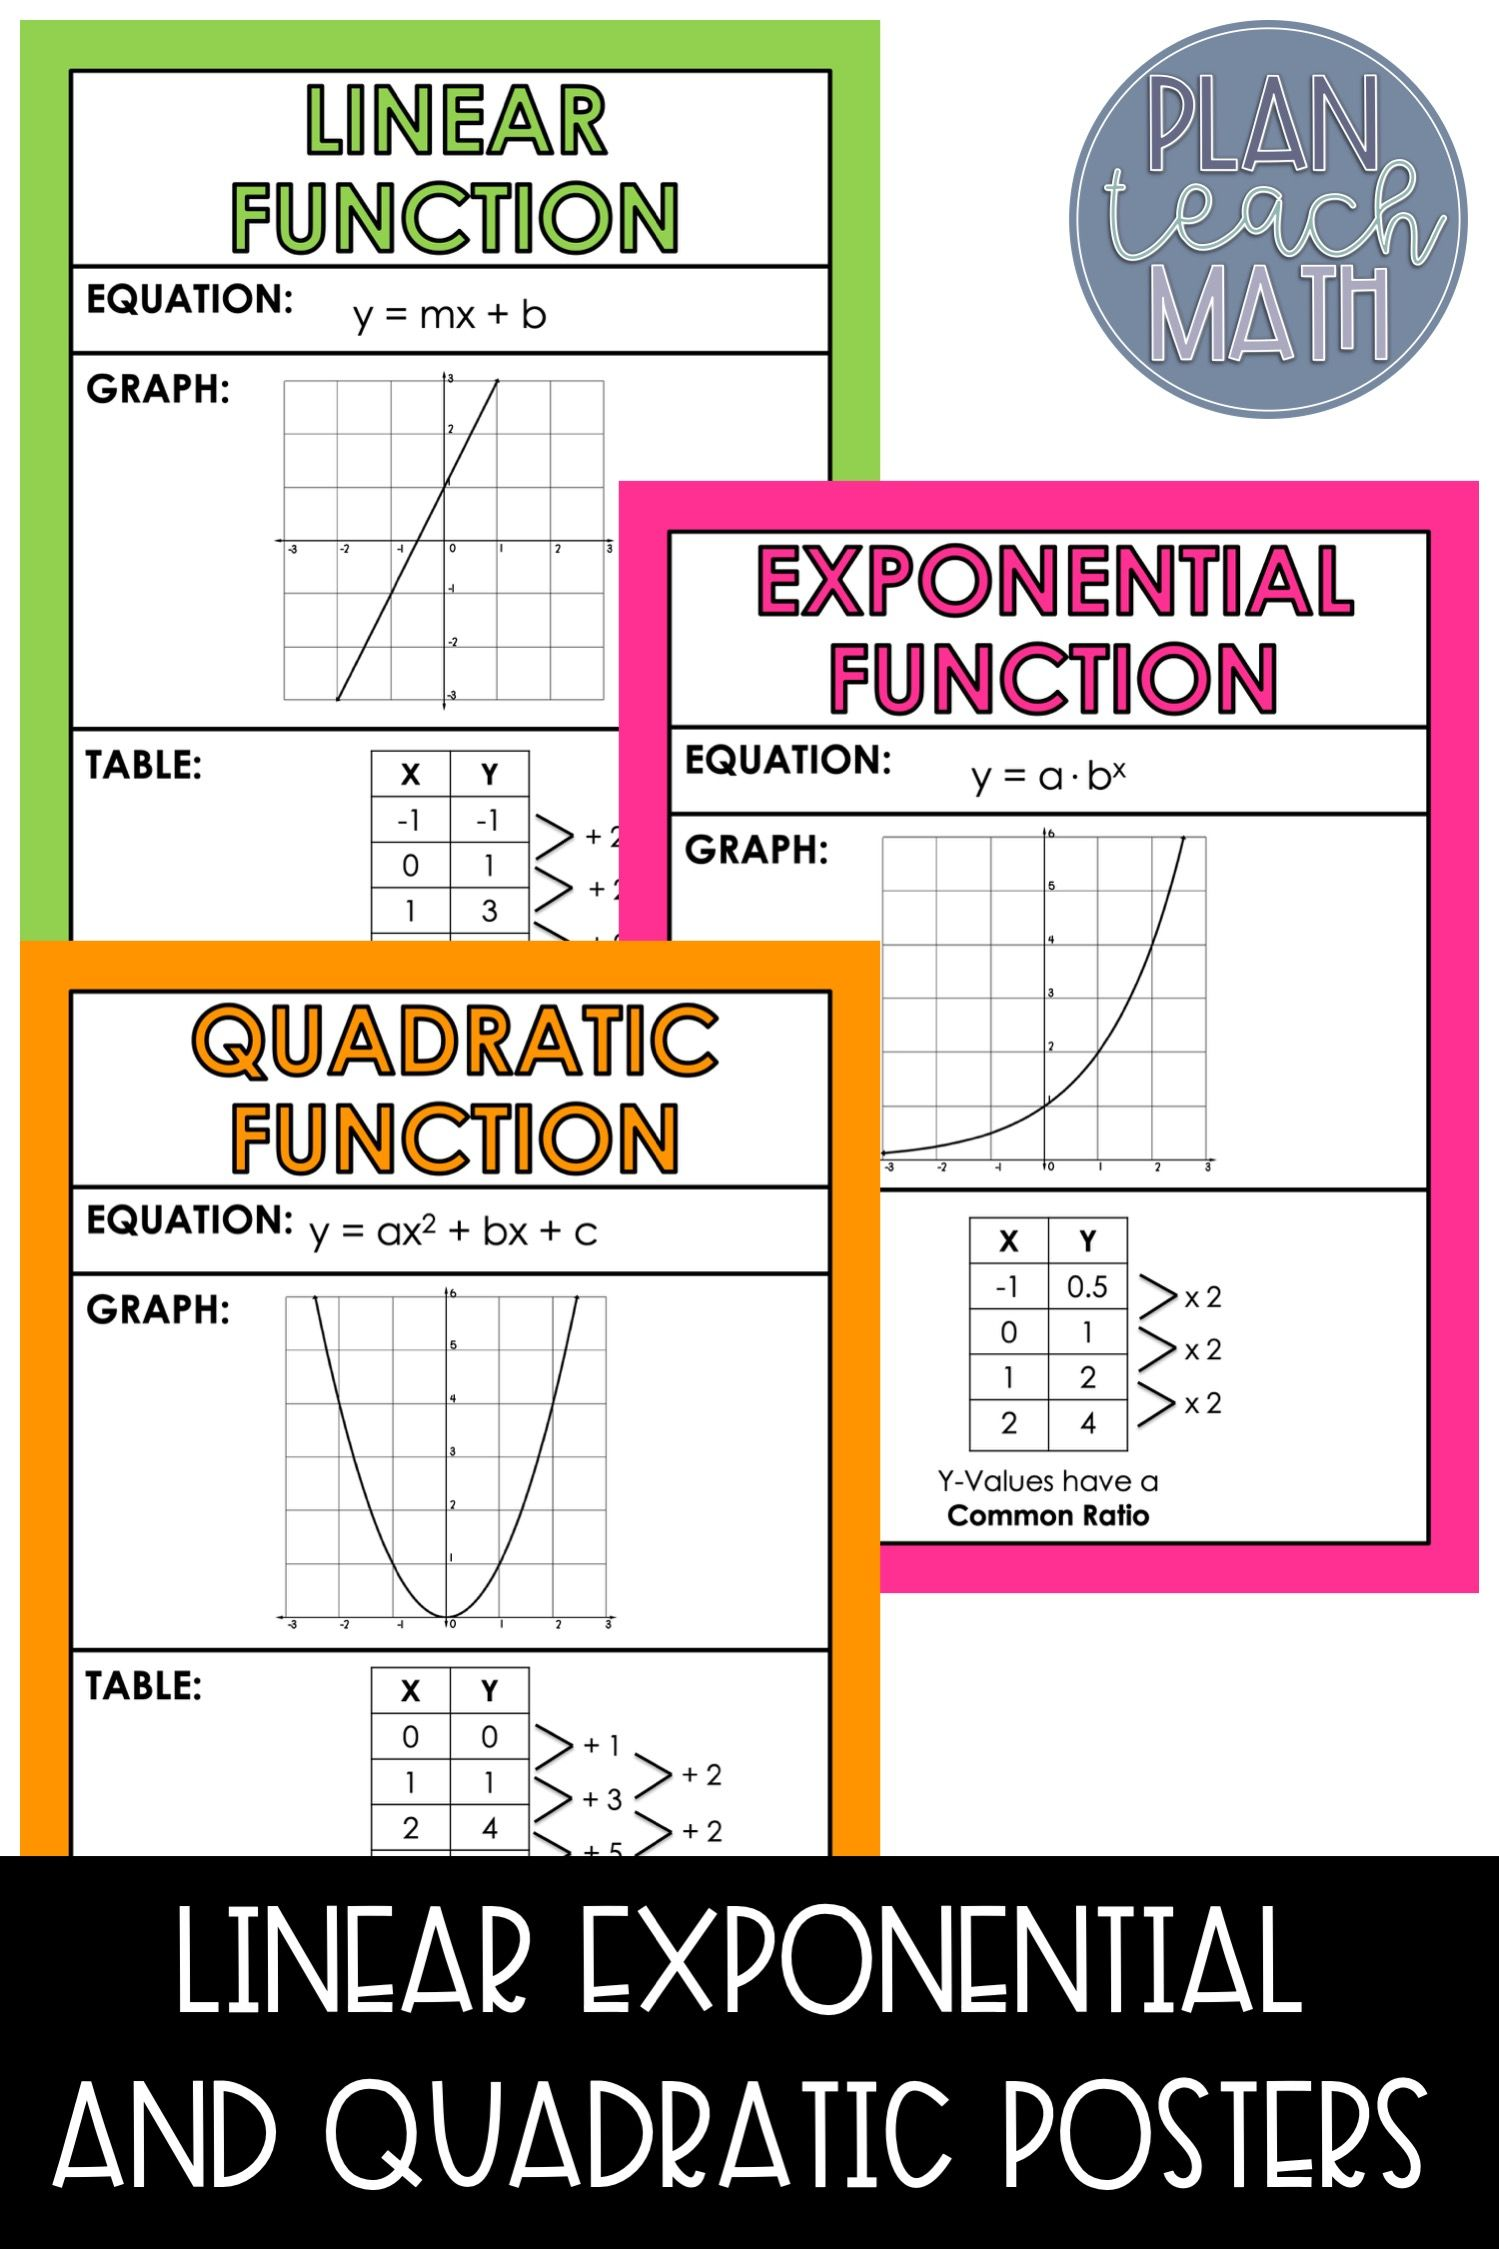 Compare Linear Functions Exponential Functions And